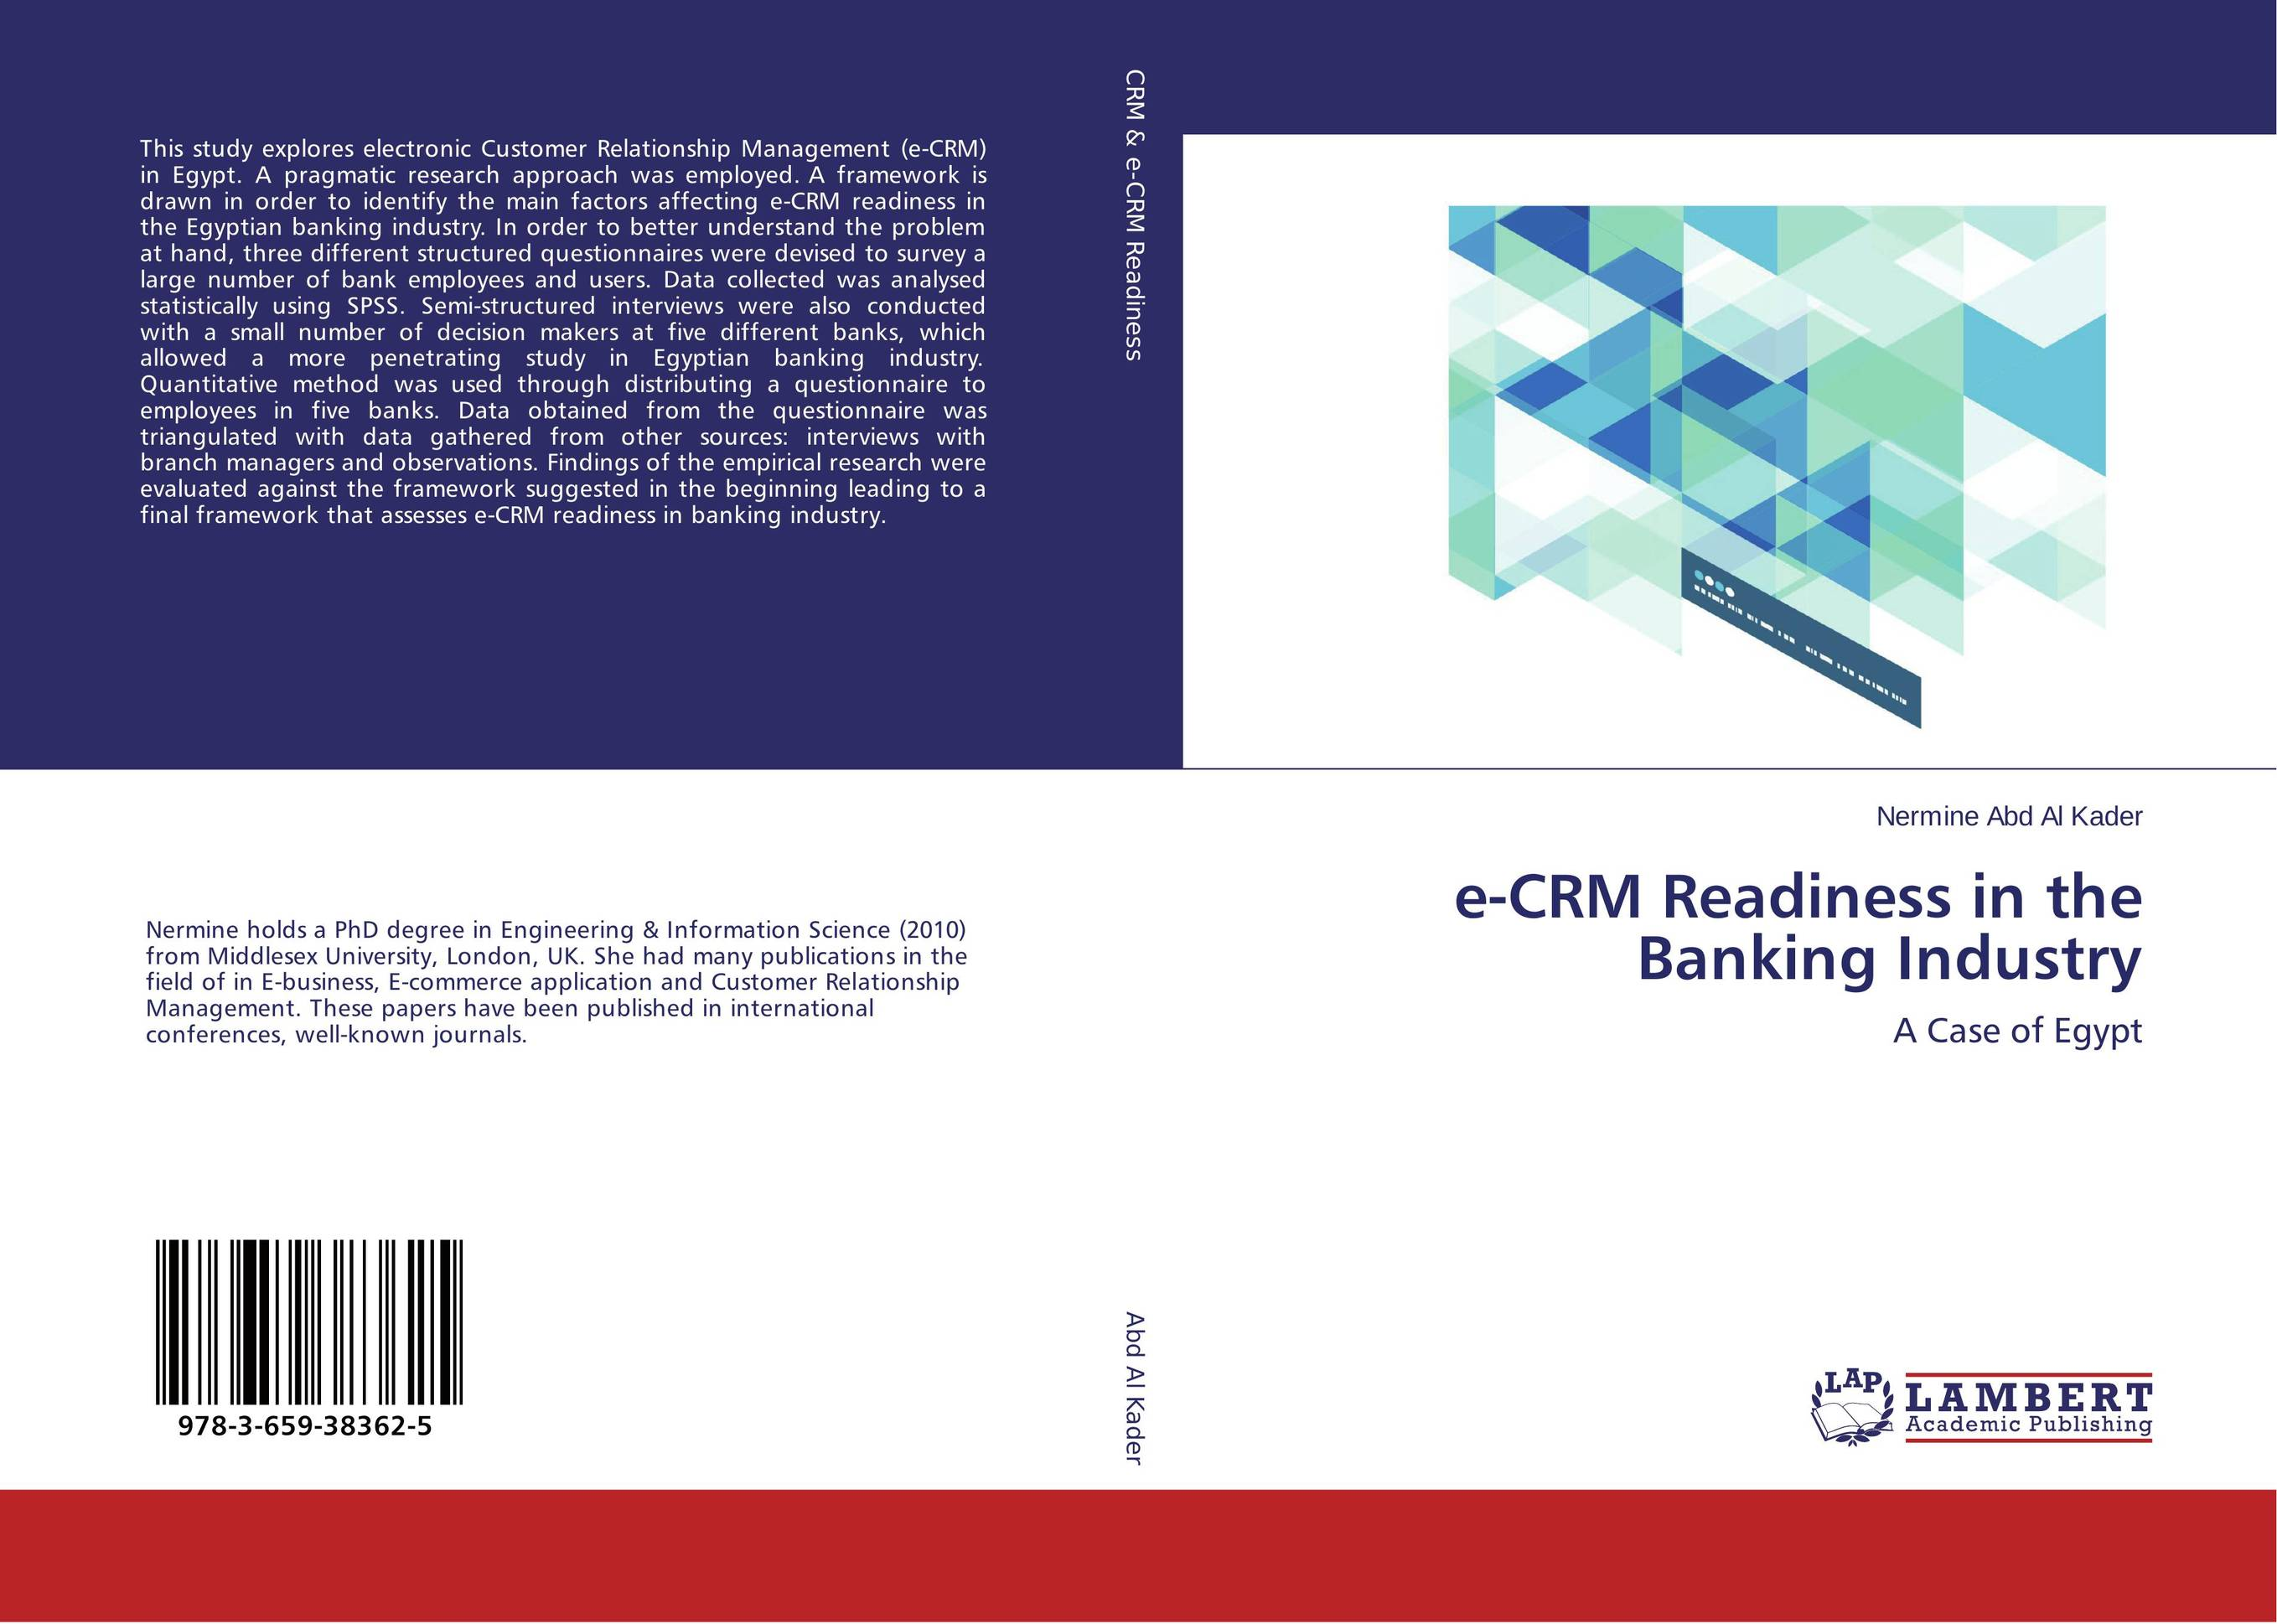 e-CRM Readiness in the Banking Industry crm emerging practices in agrochemical industry